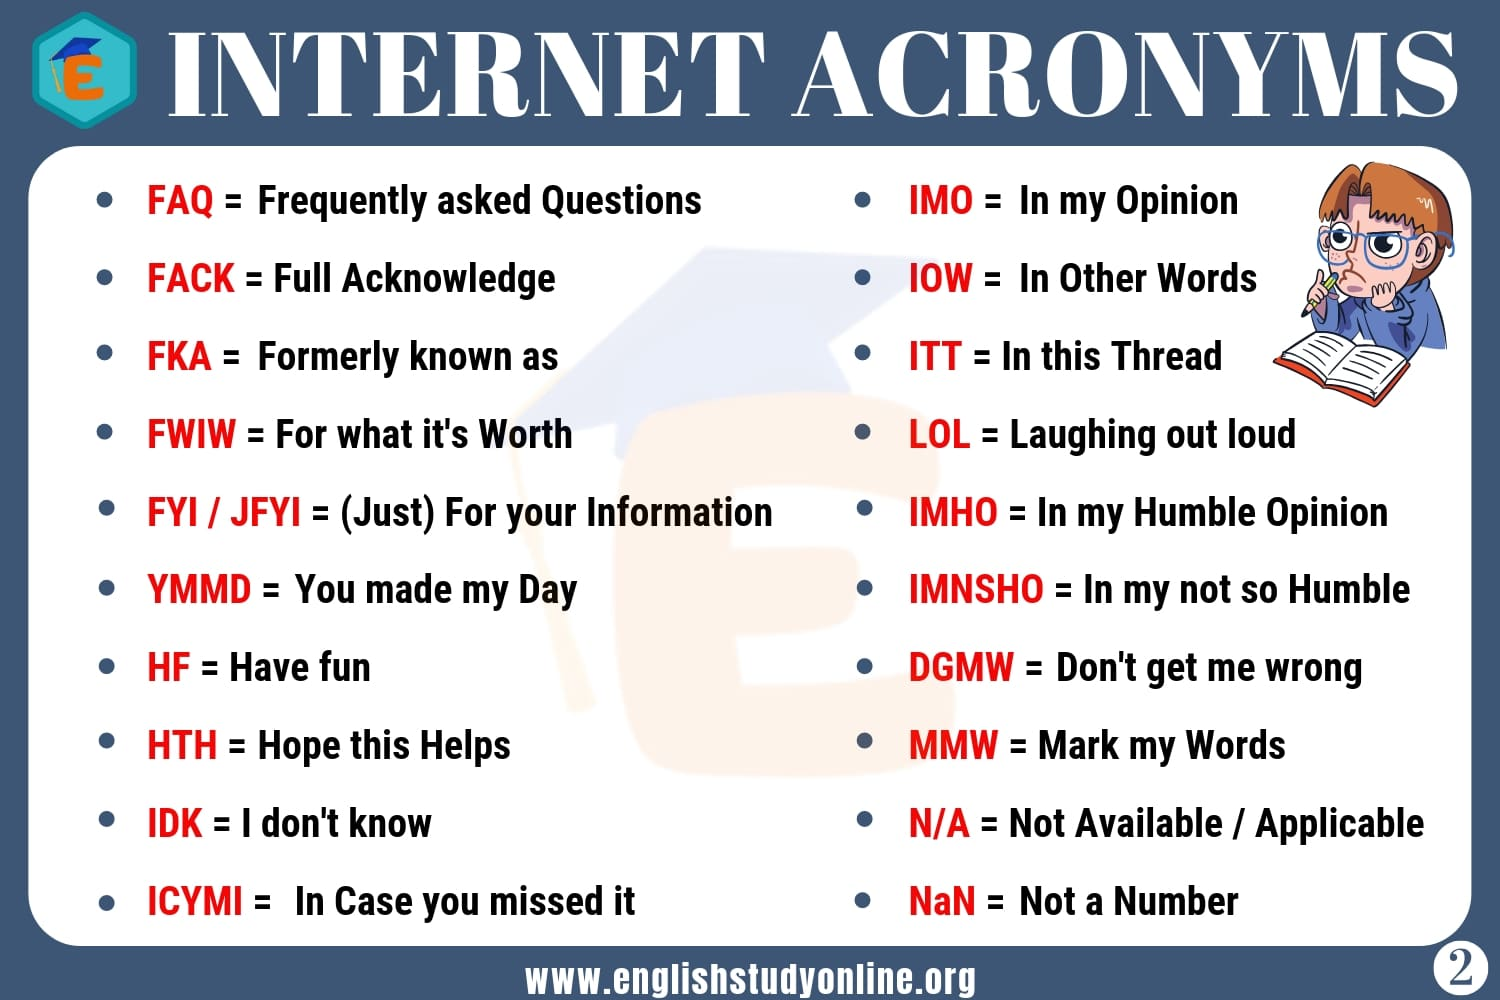 IMO Meaning | List of 70+ Popular Internet Acronyms for ESL